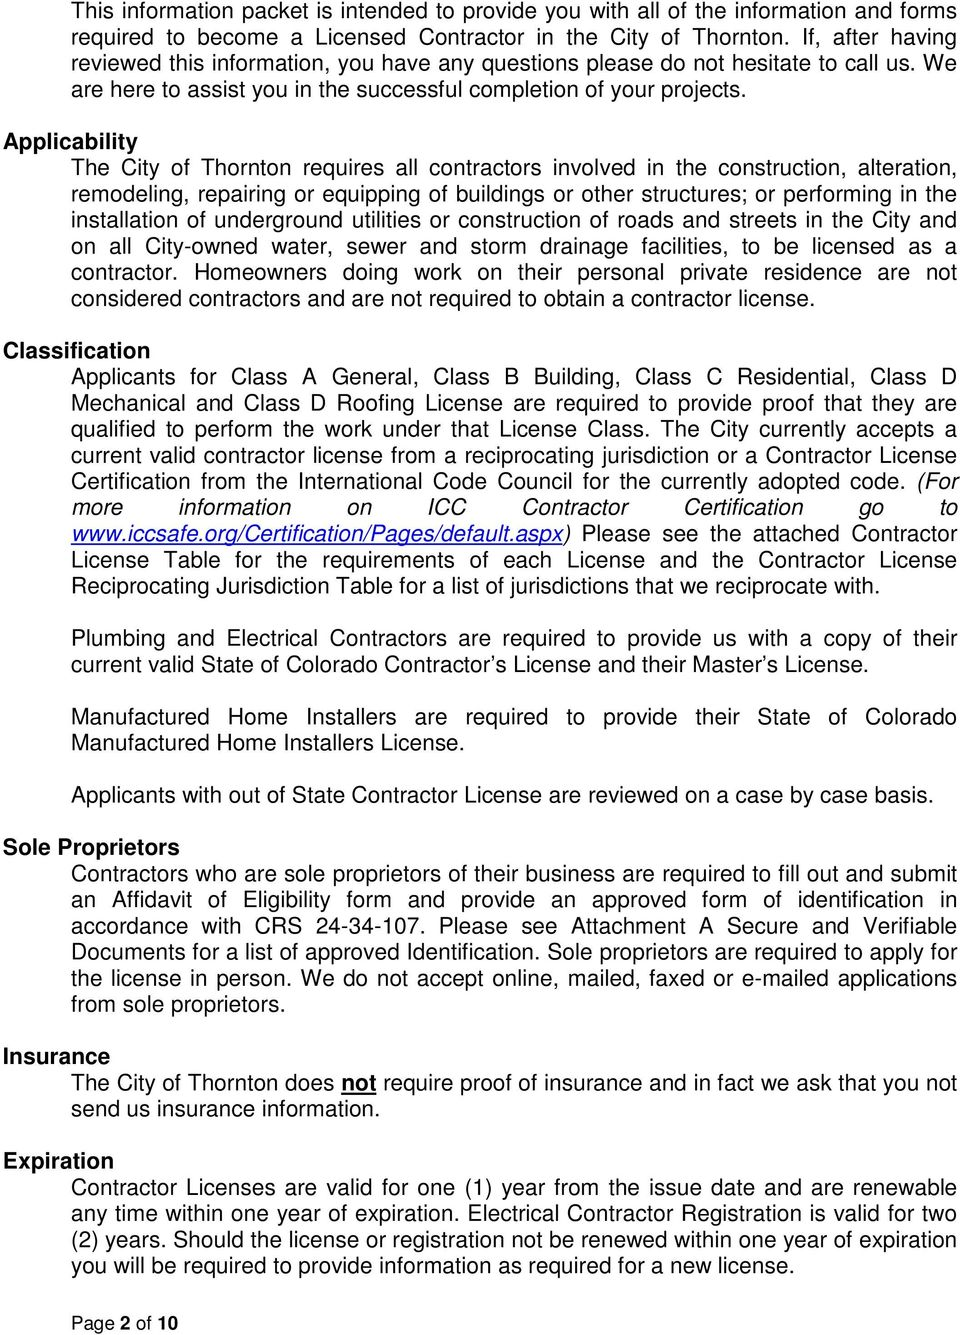 Contractor License Information And Forms Pdf